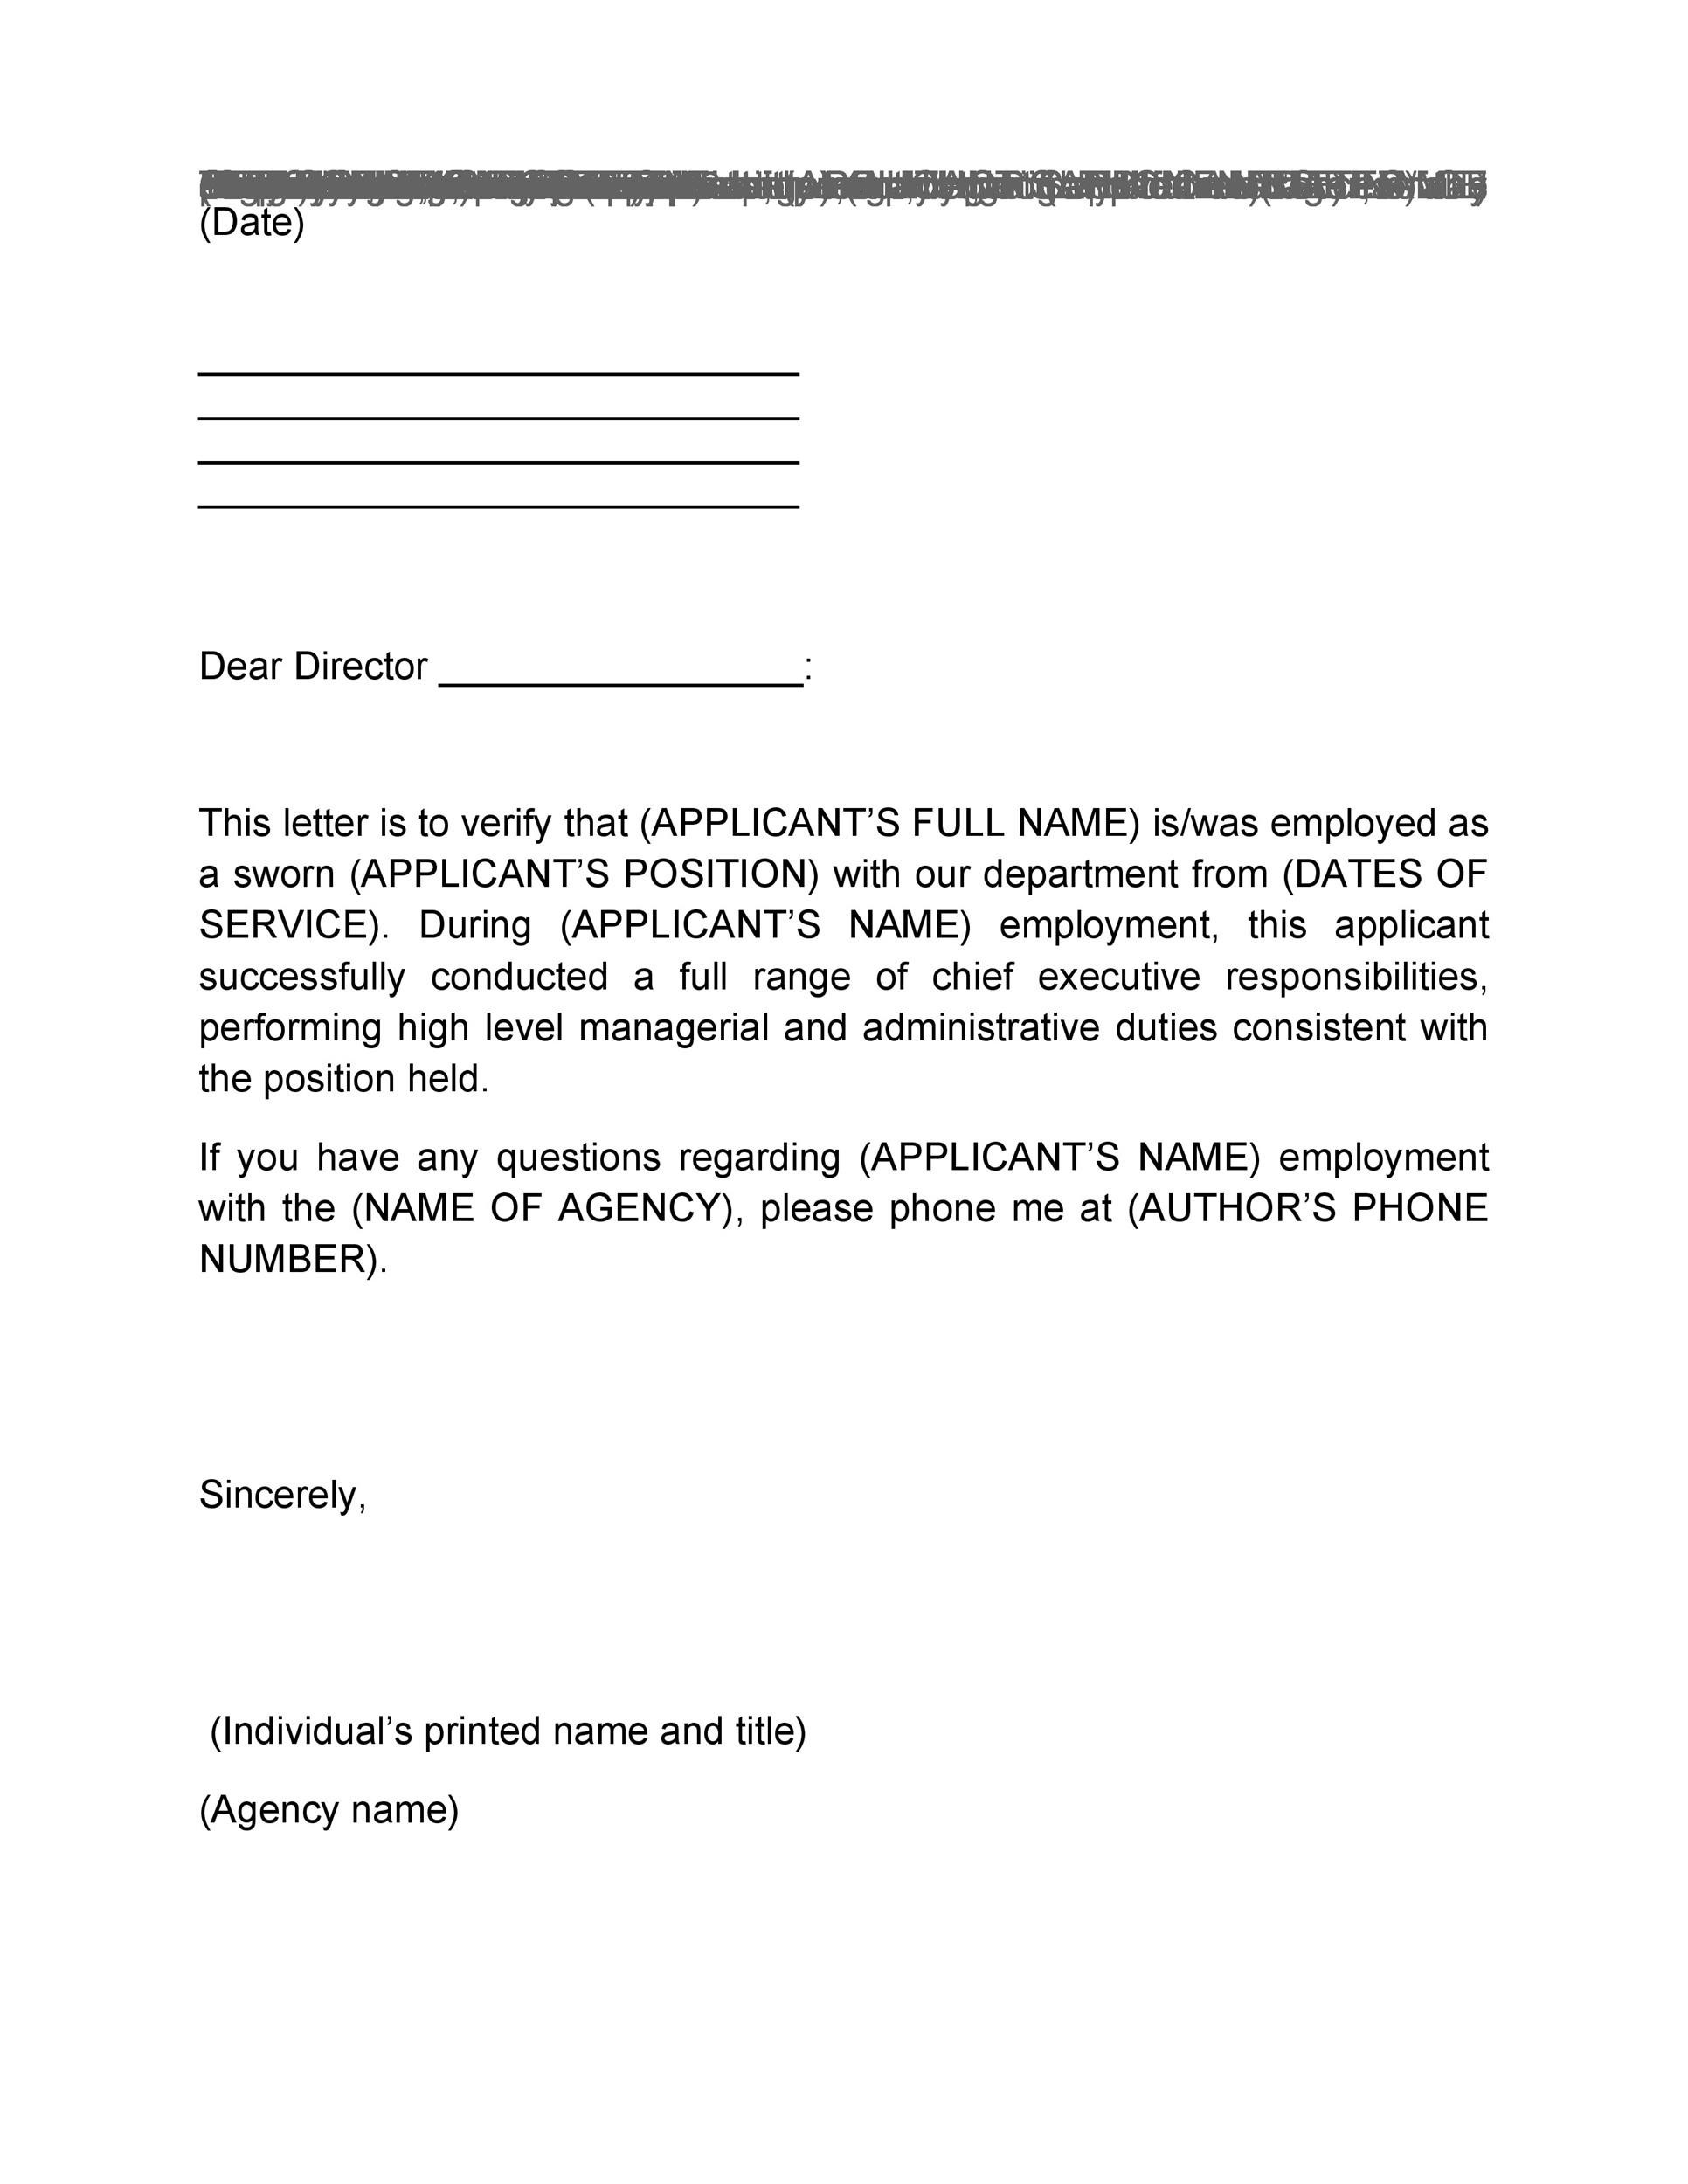 proof of employment letter template 01 - Employment Proof Letter